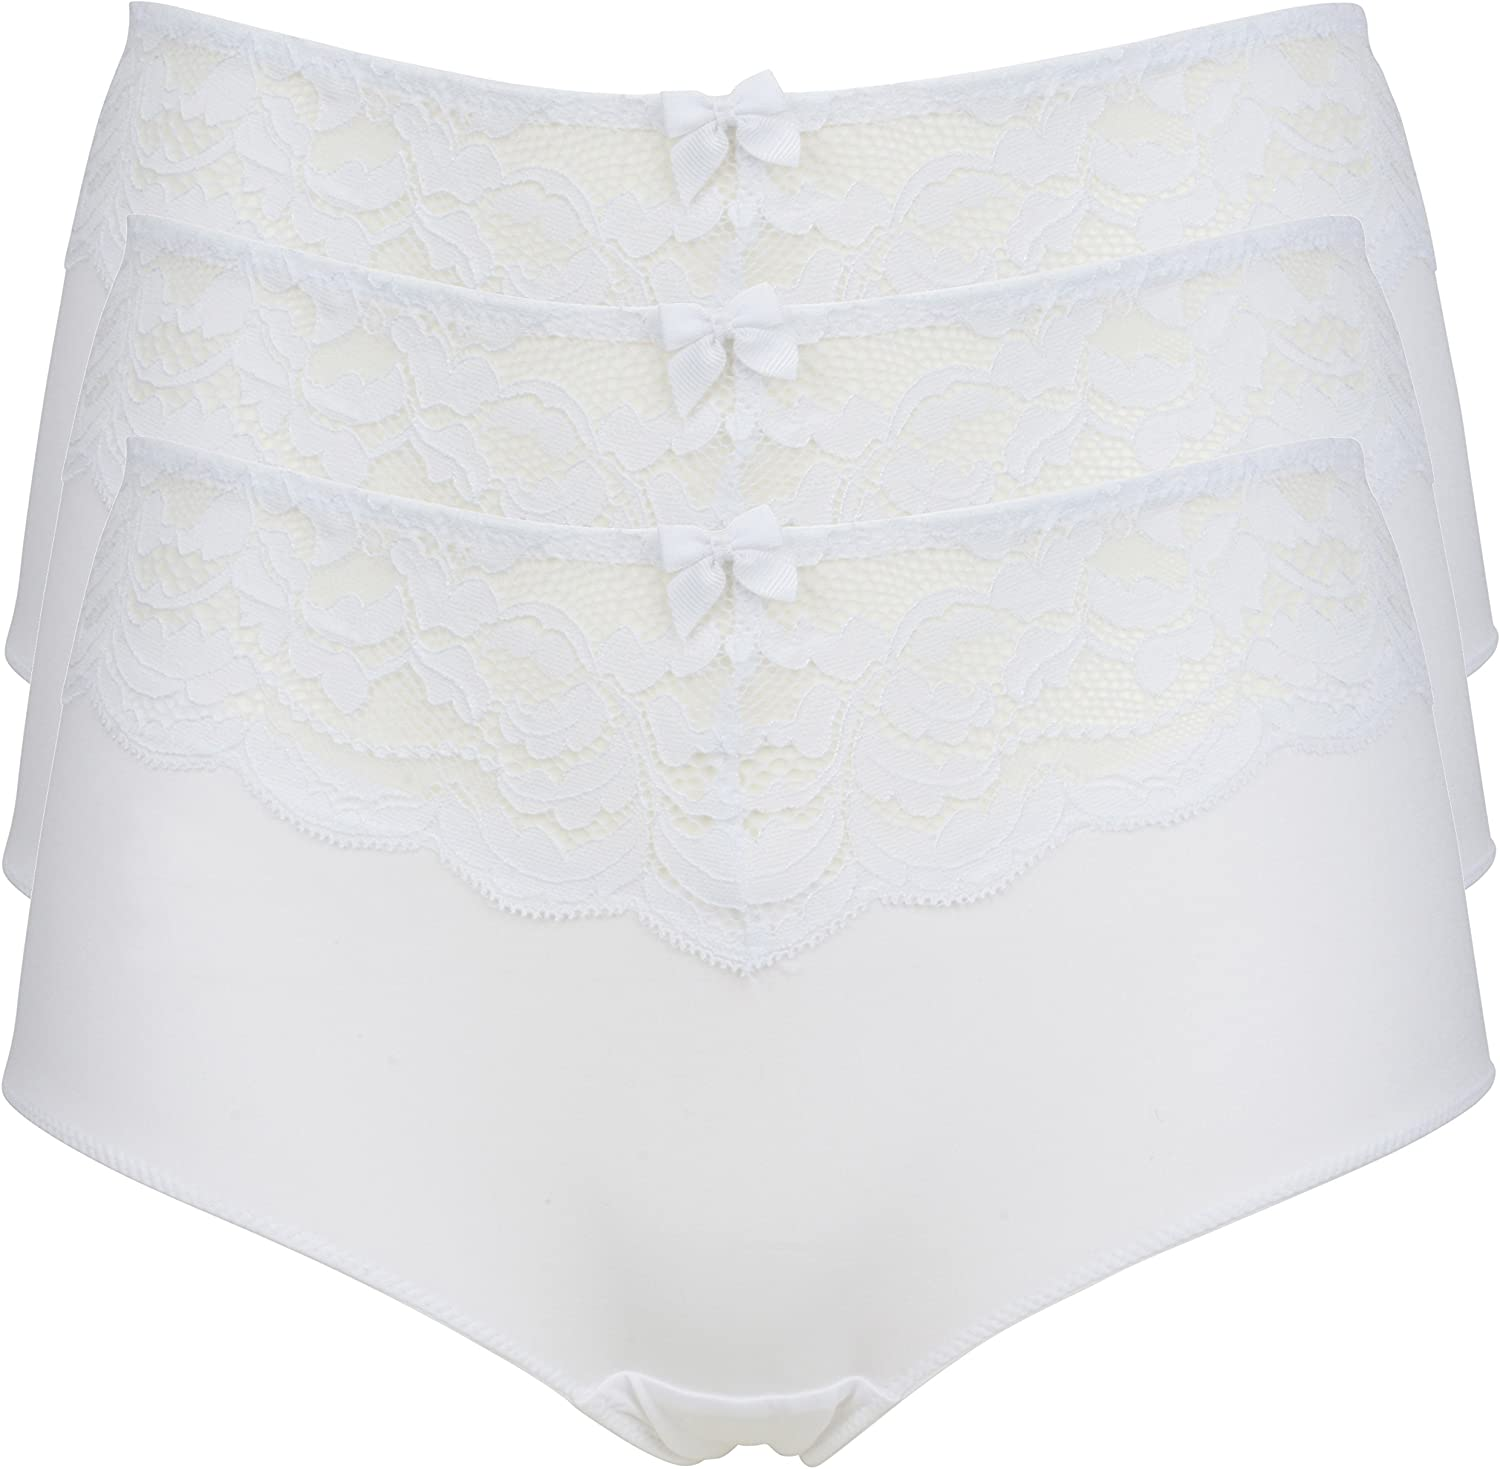 Ex-Store 3 Pack High Rise Ornate Lace and Microfibre Shorts White